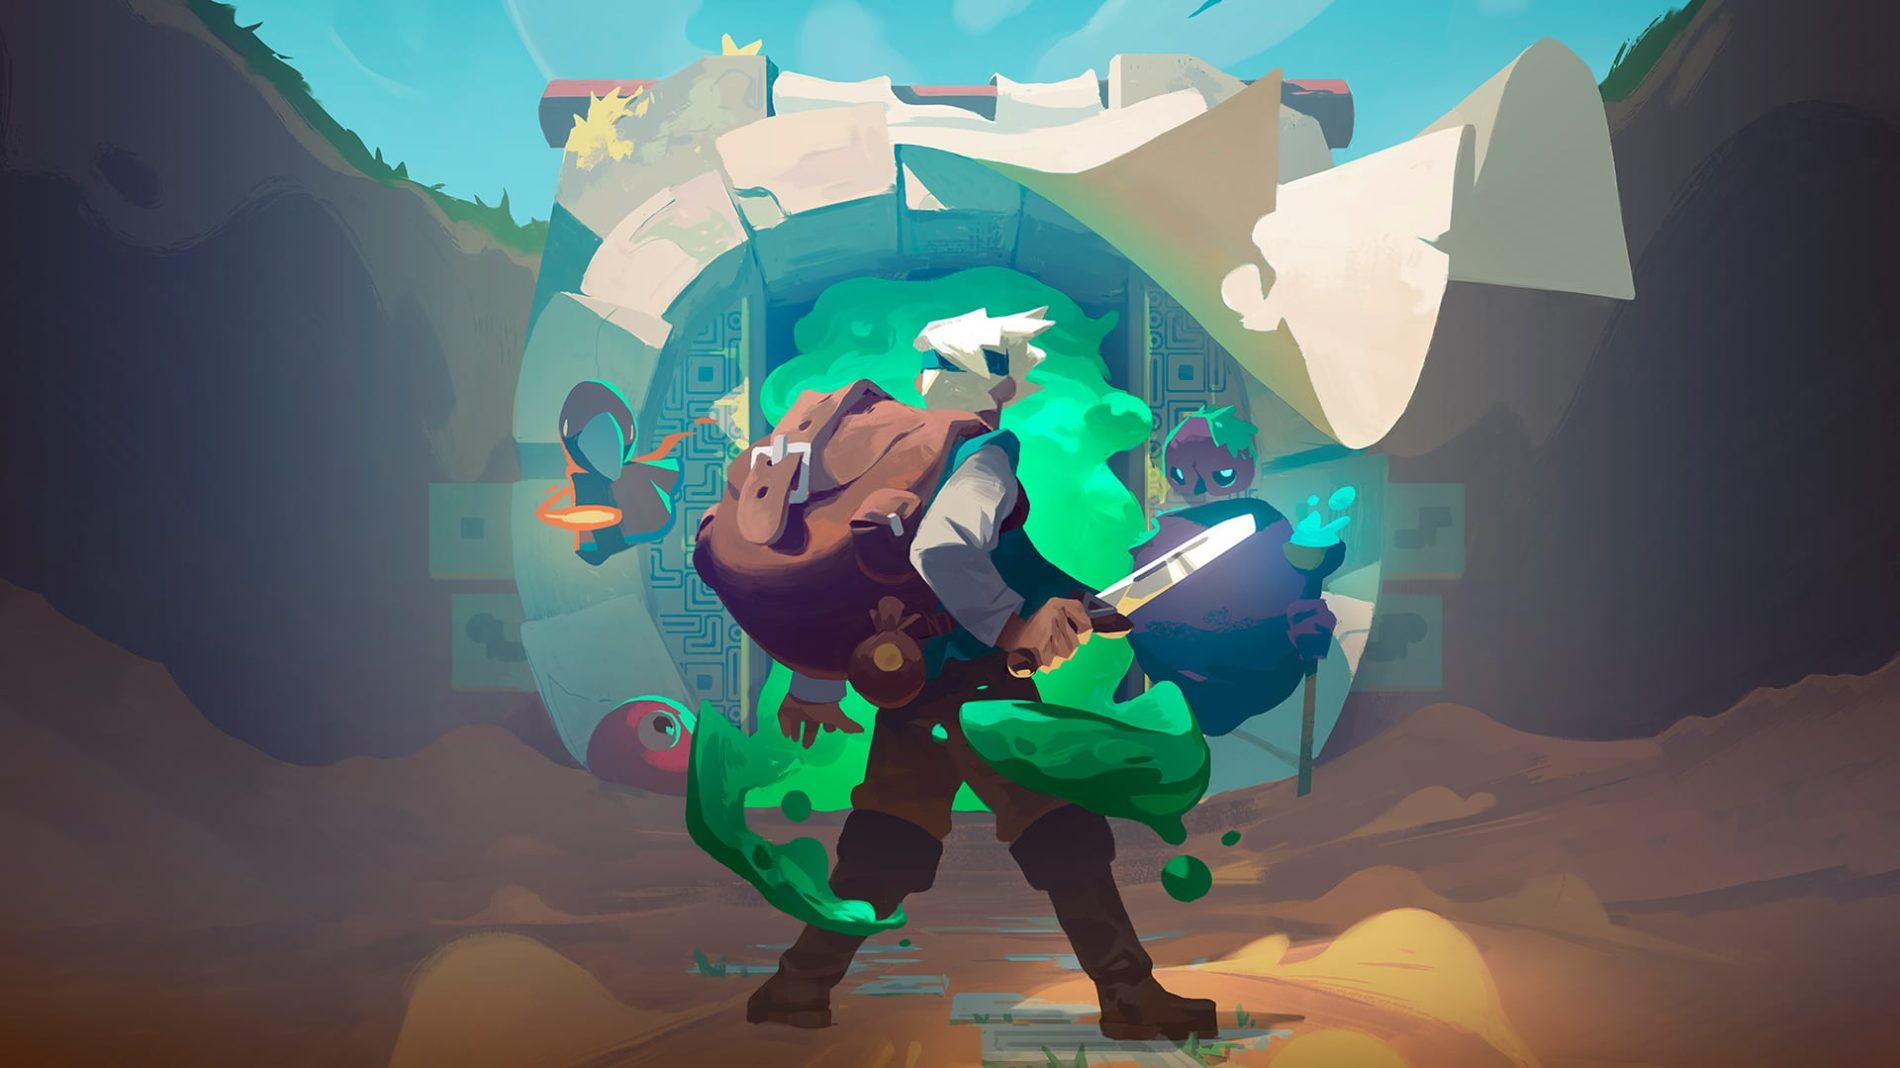 Moonlighter – Le marchand aventurier